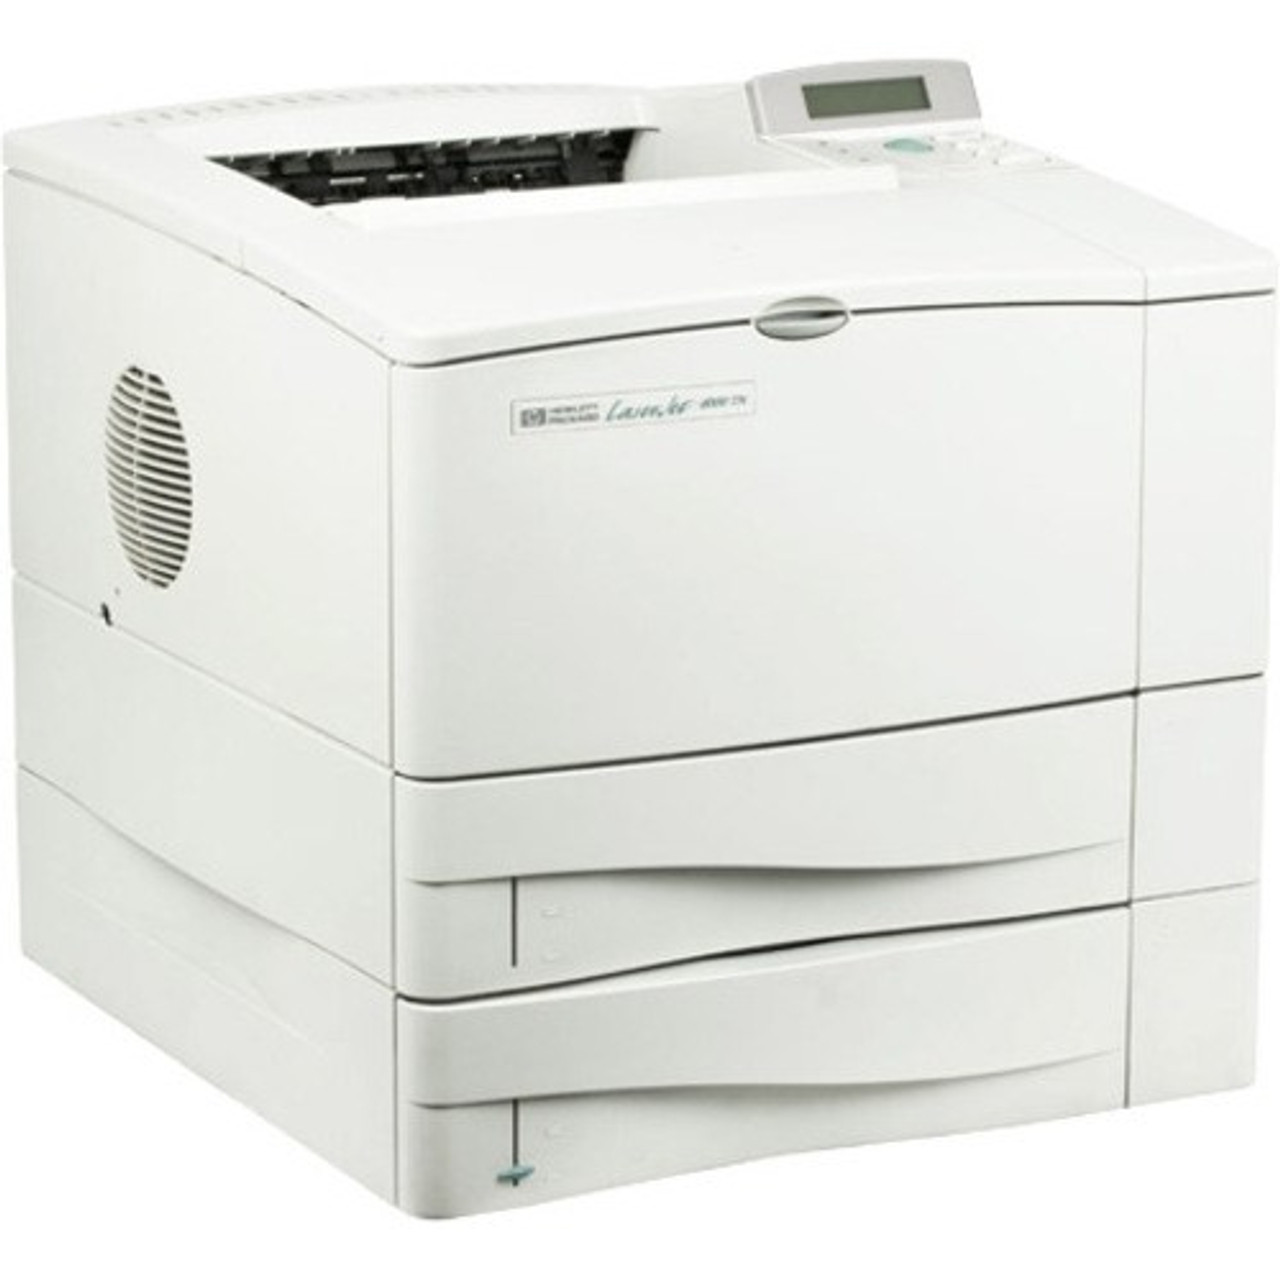 HP LaserJet 4050t - c4252a - HP Laser Printer for sale